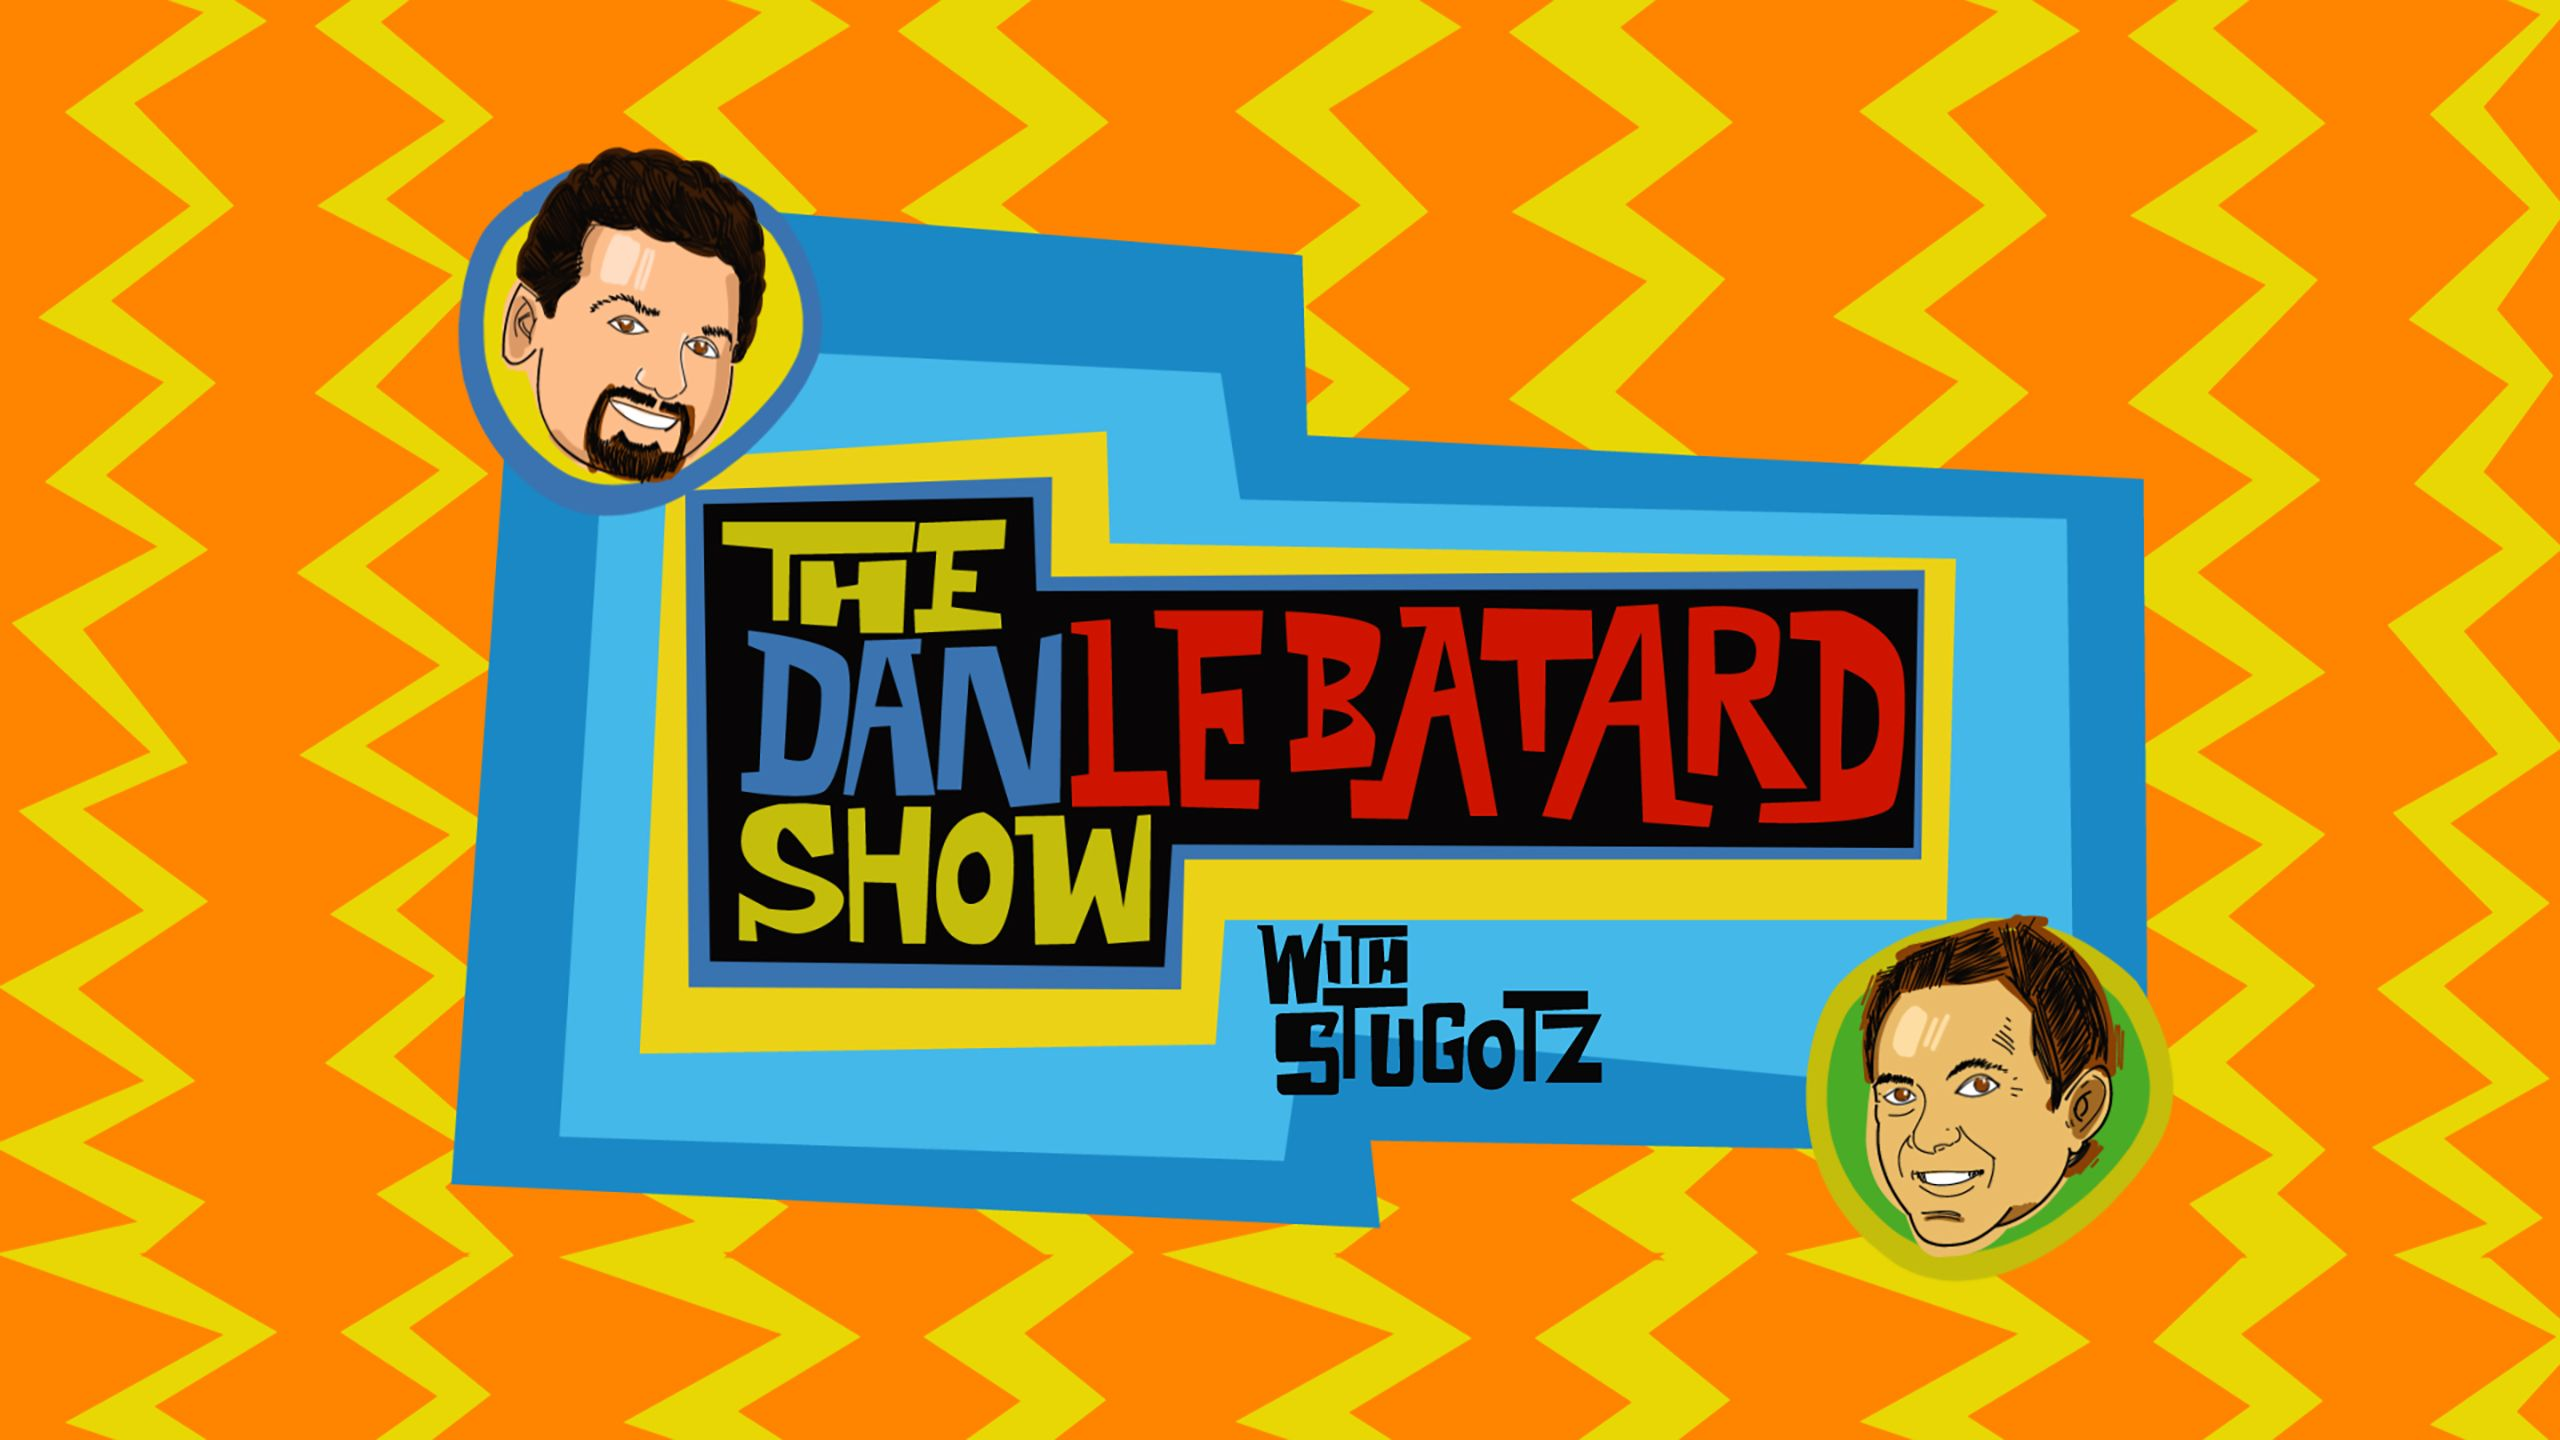 Fri, 7/20 - The Dan Le Batard Show with Stugotz Presented by Progressive